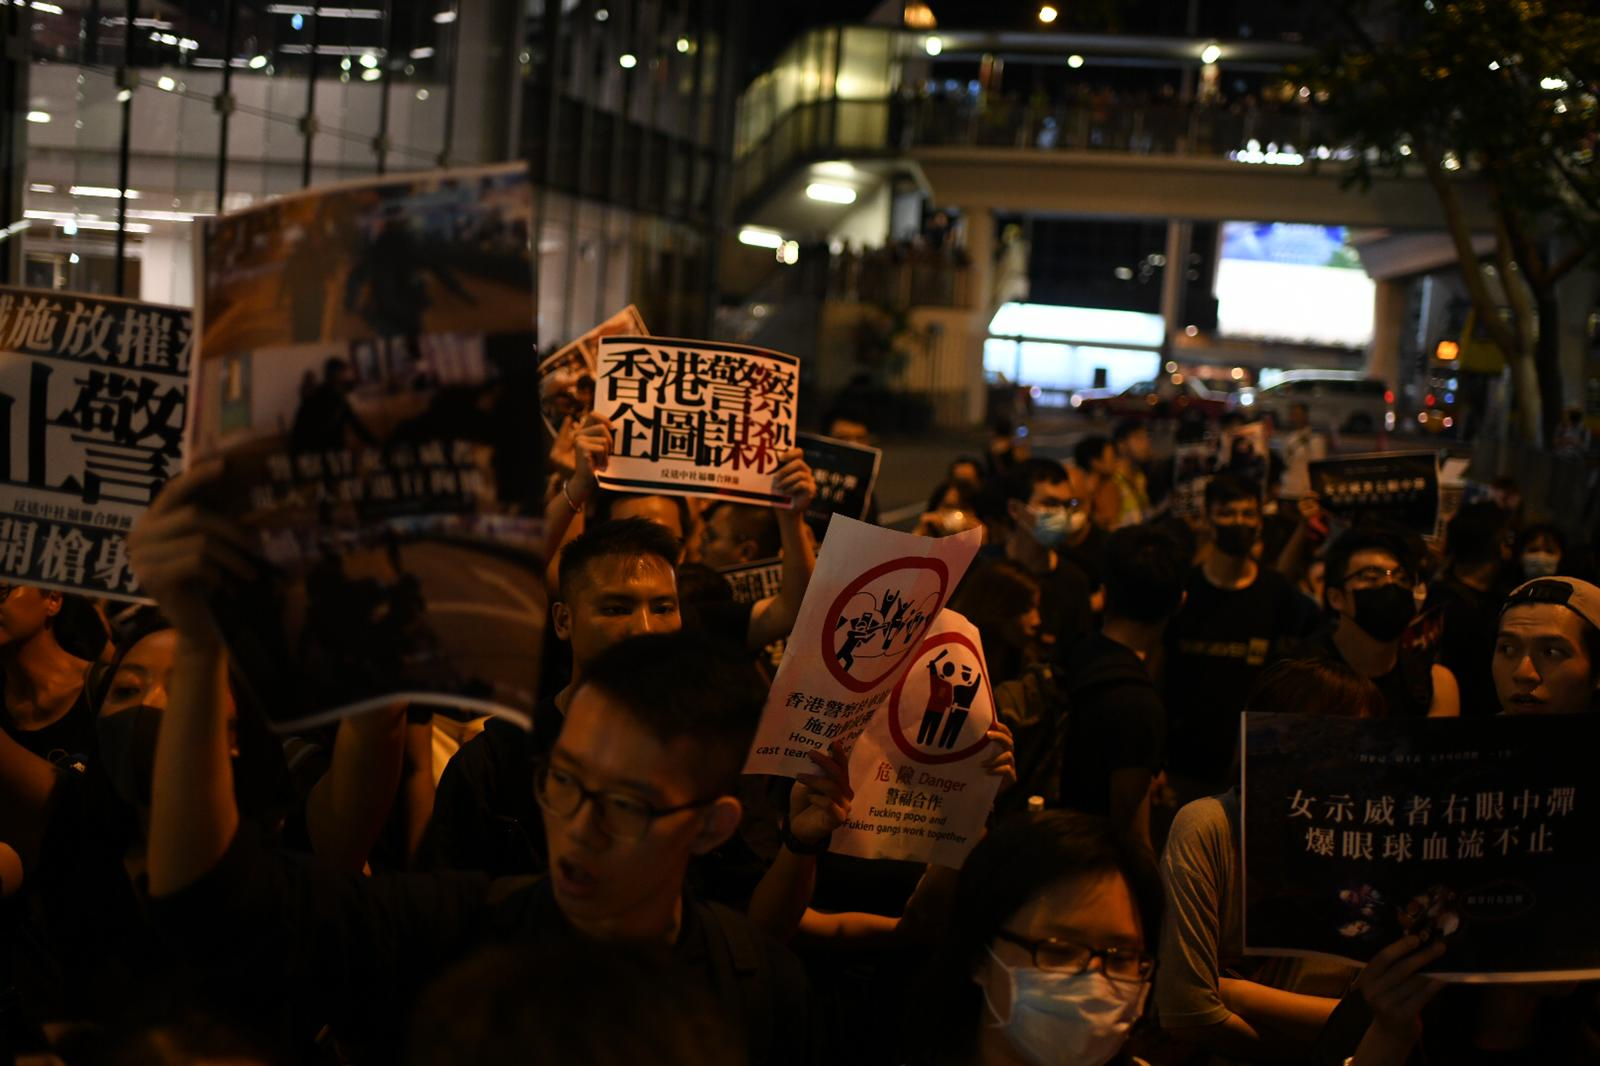 Crowds are gathering in Wan Chai district after a sit-in at the airport earlier today.